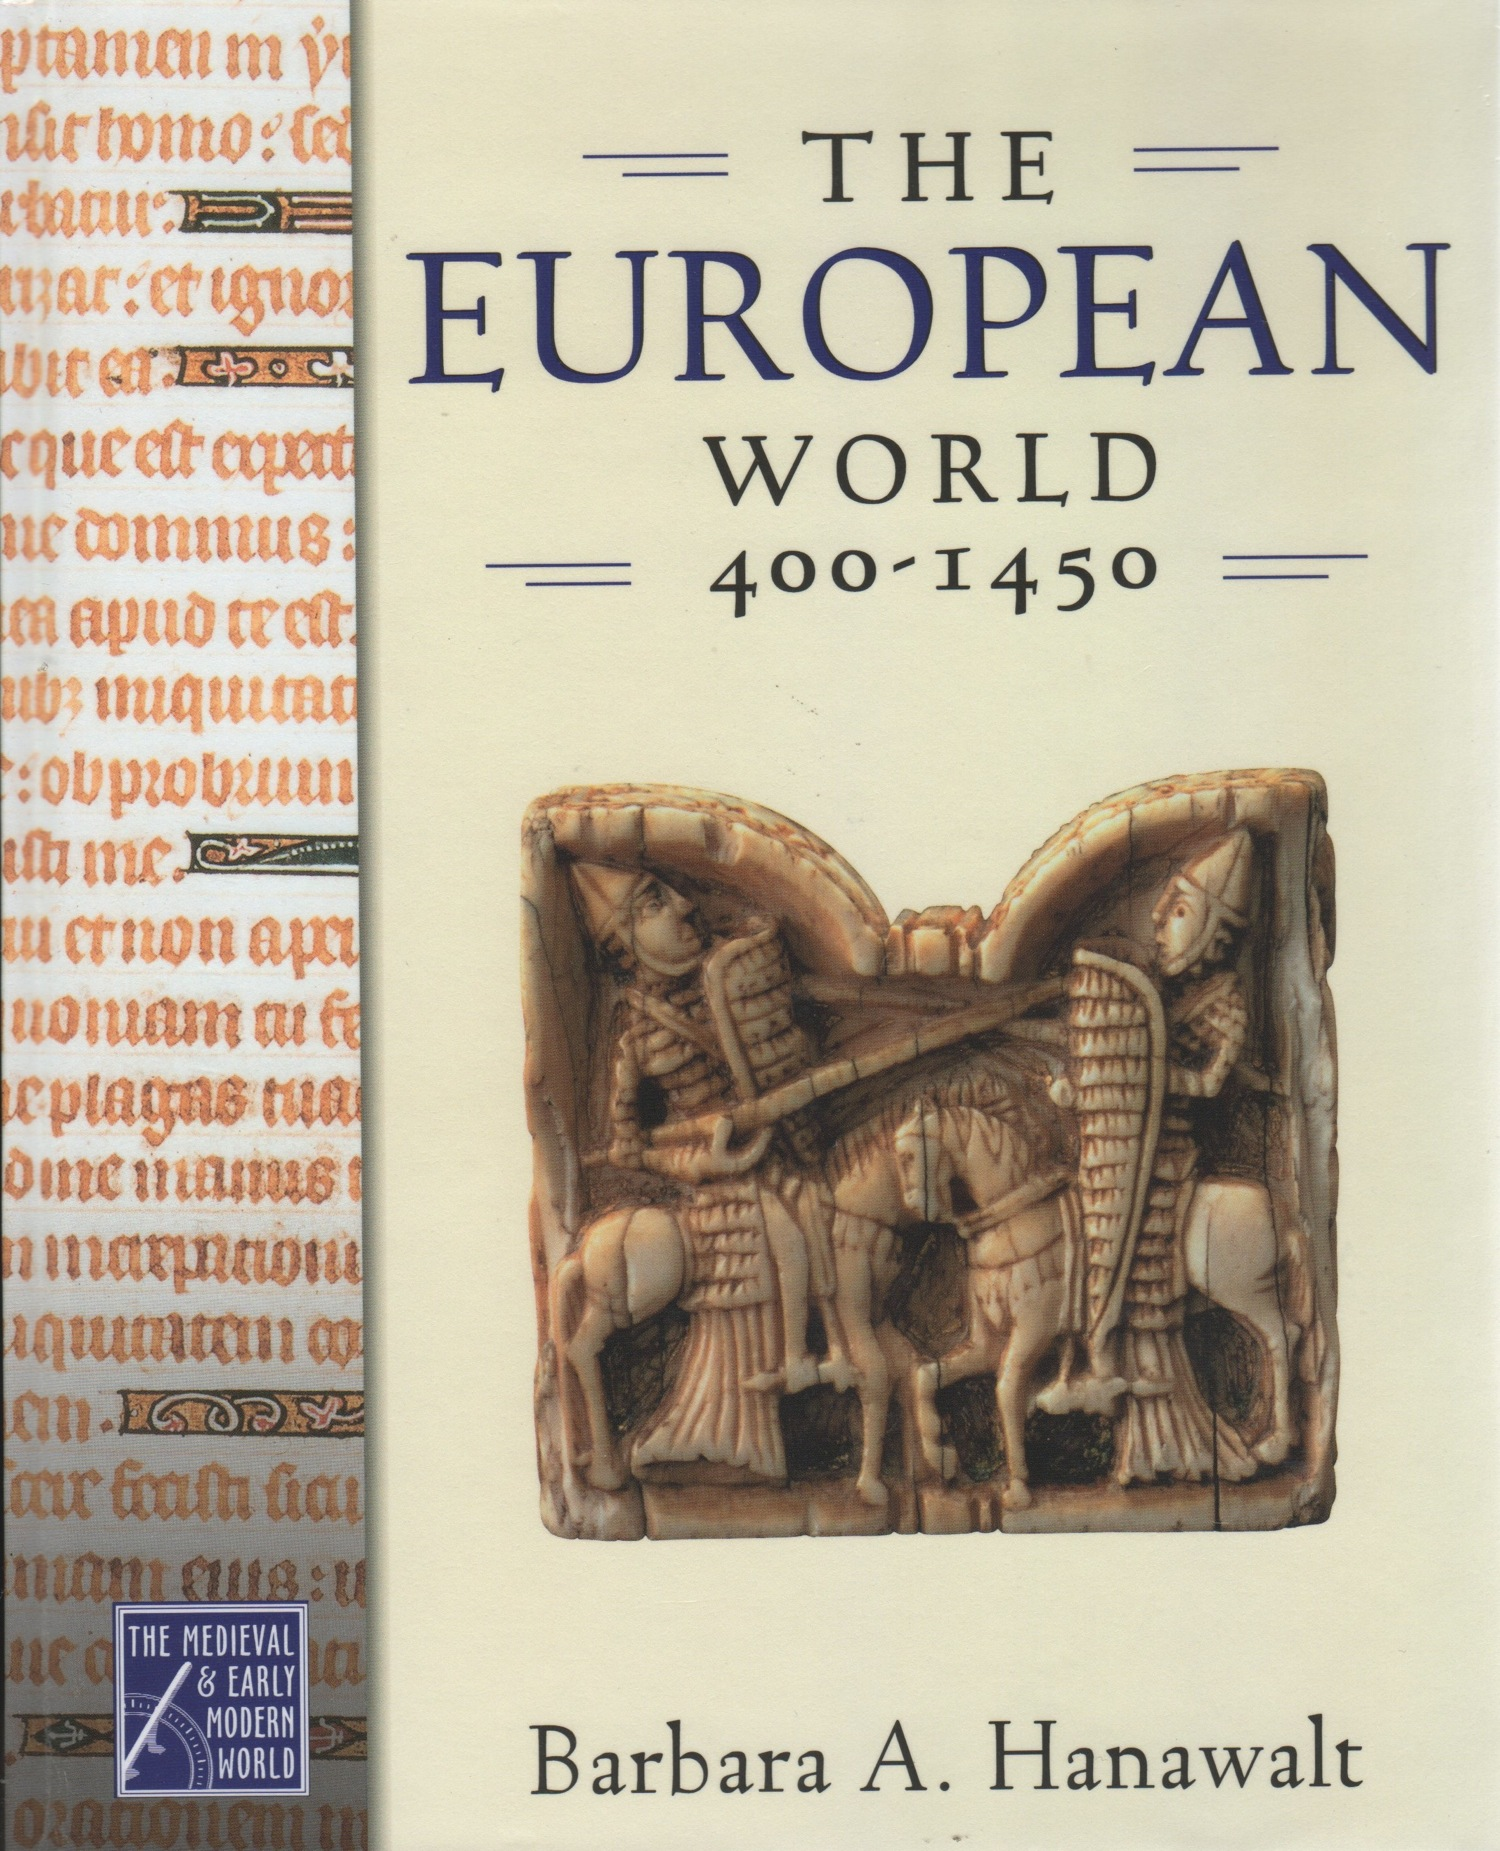 European World 400-1450, The